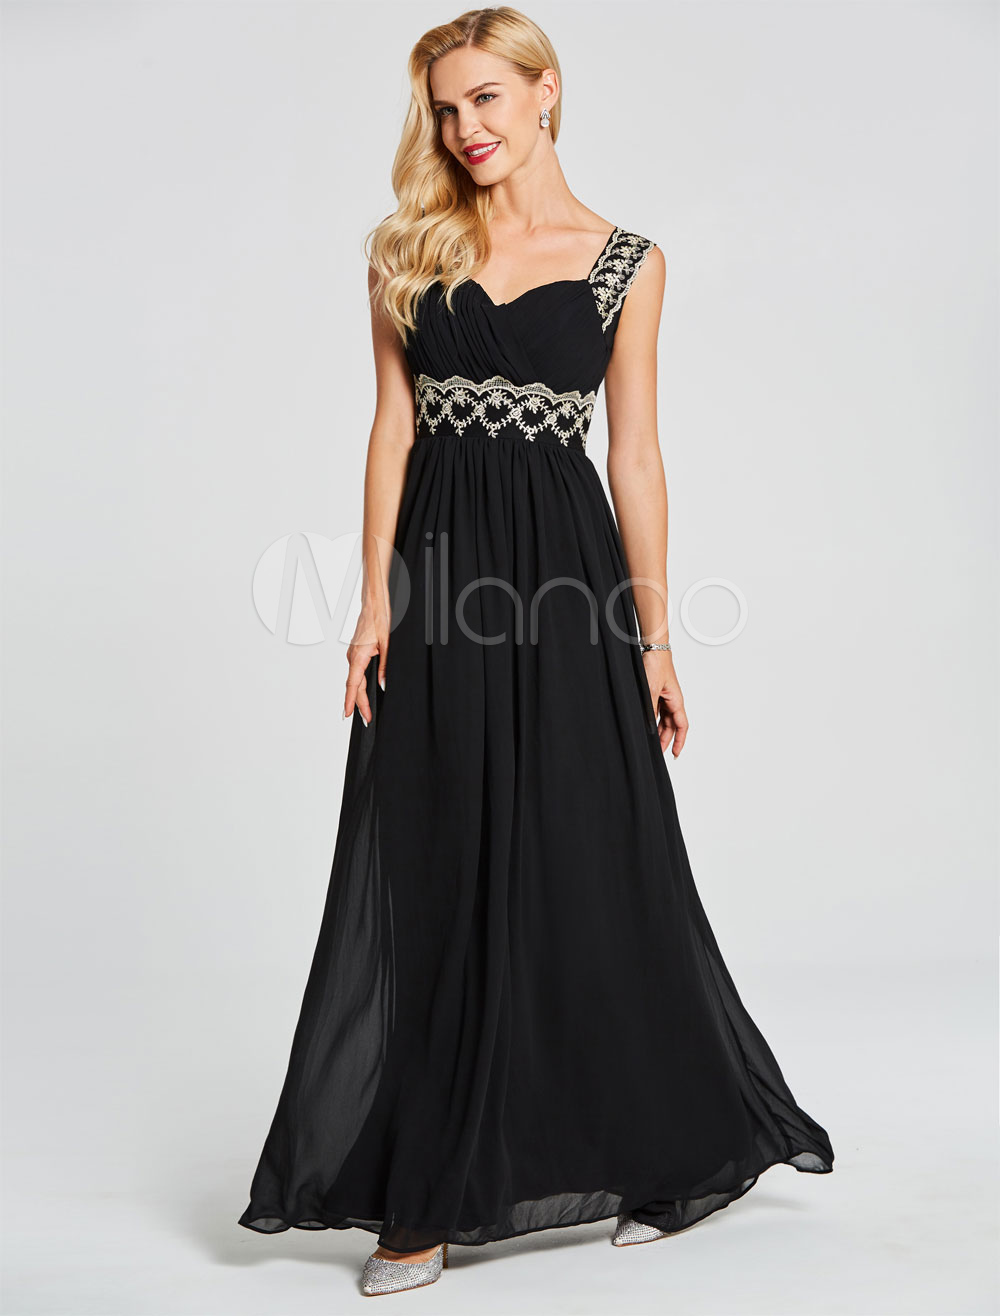 Black Prom Dresses Long Chiffon Lace Keyhole Pleated Illusion Floor Length Party Dresses